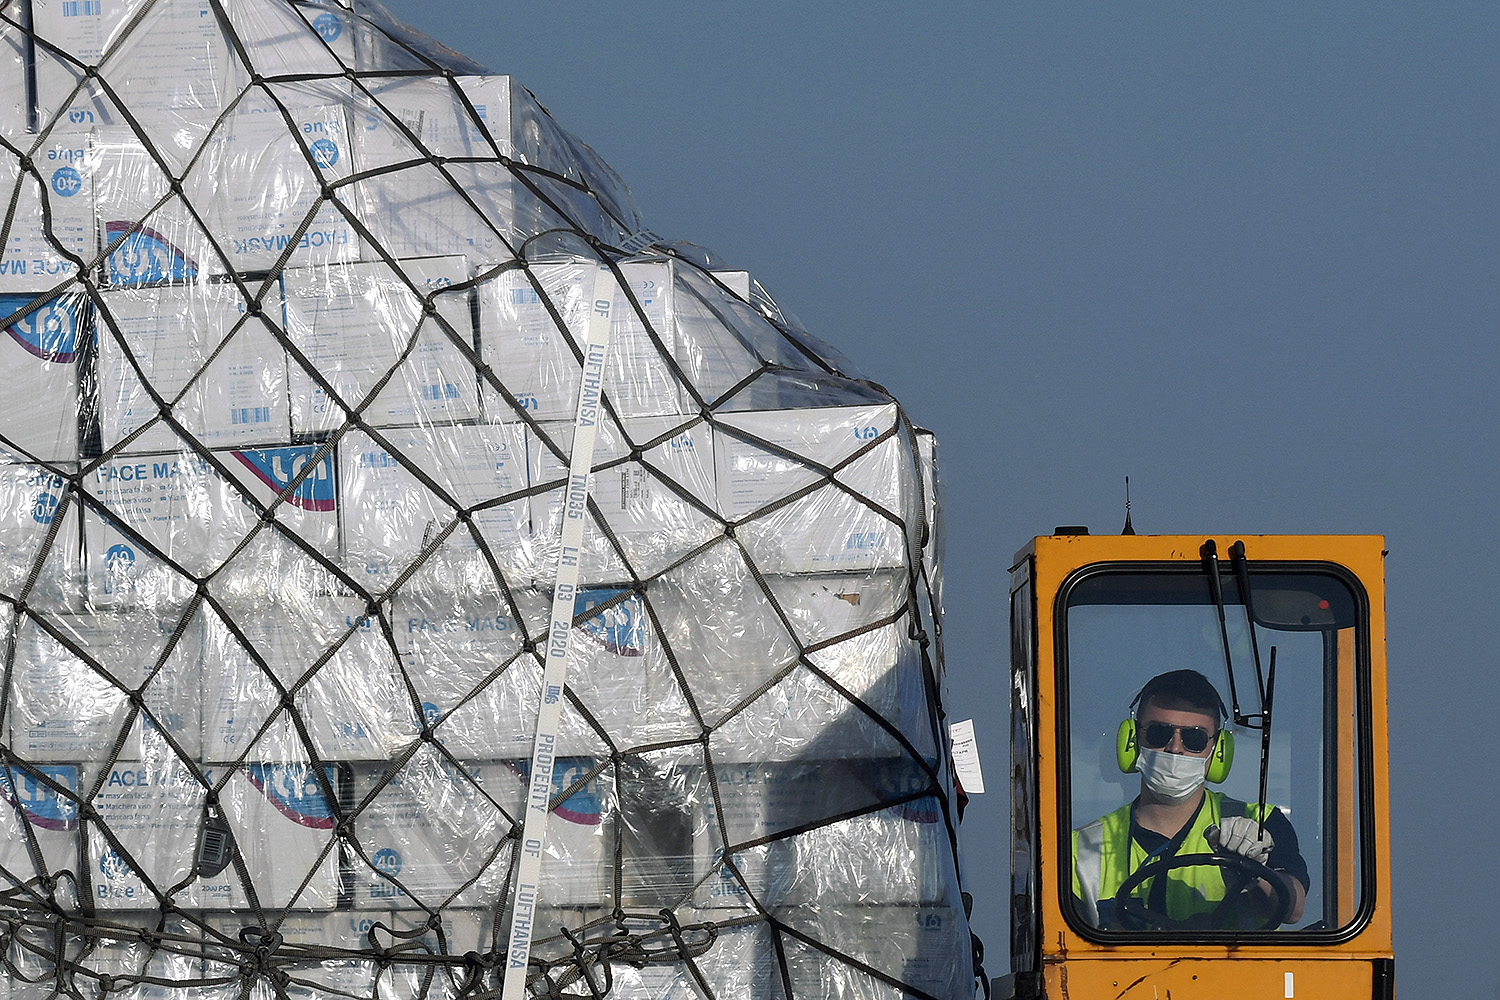 A batch of 8 million protective masks arrives from Shanghai and is unloaded from a Lufthansa plane at the airport in Munich on April 7. CHRISTOF STACHE/AFP via Getty Images